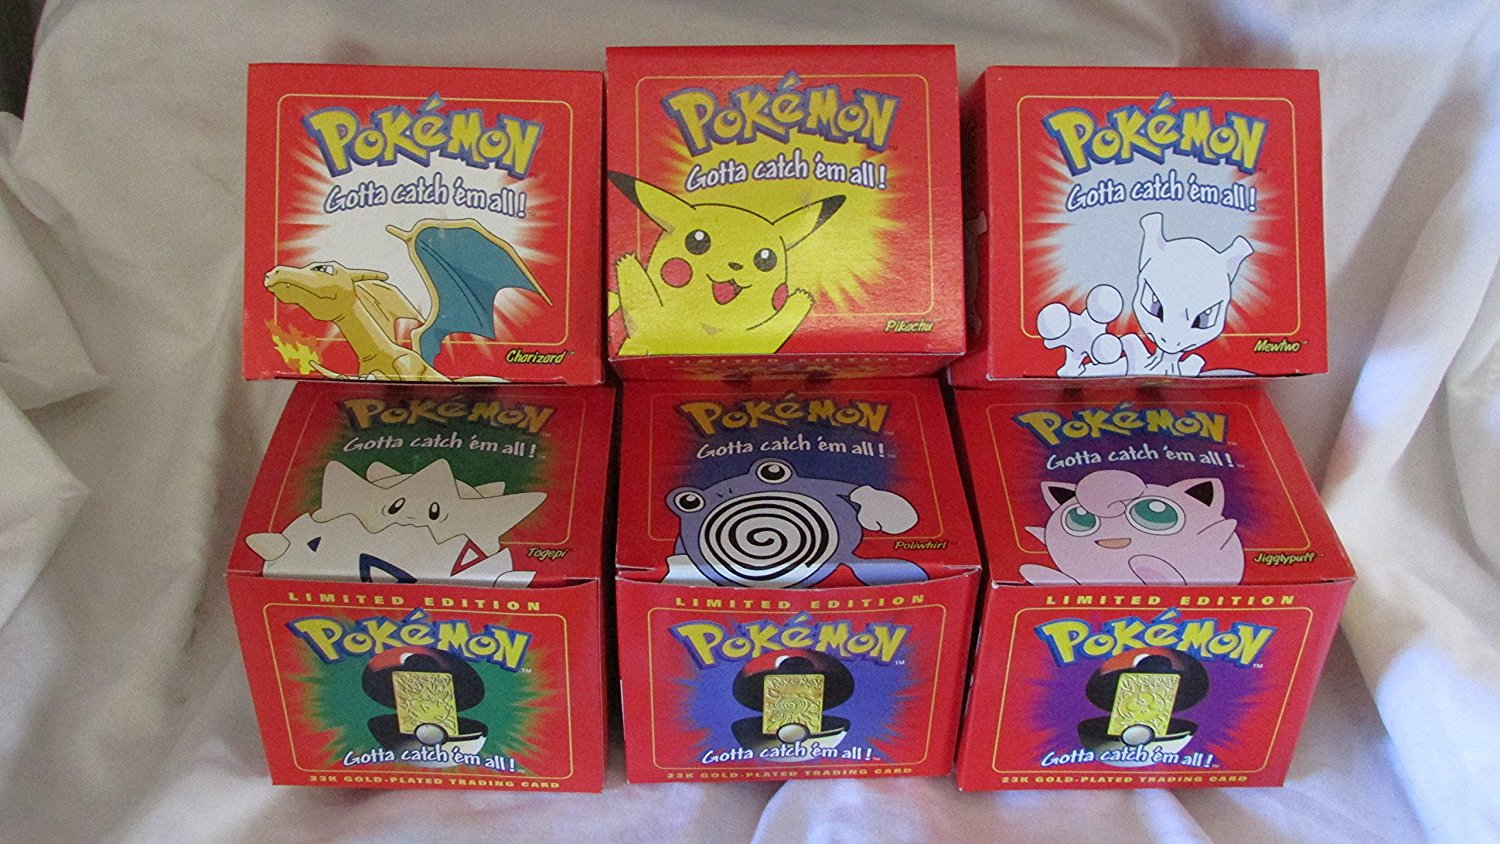 Pokemon 23k gold plated metal Burger King Set of 6 all in red boxes new unopened Pokemon balls each card has a certificate of authenticity